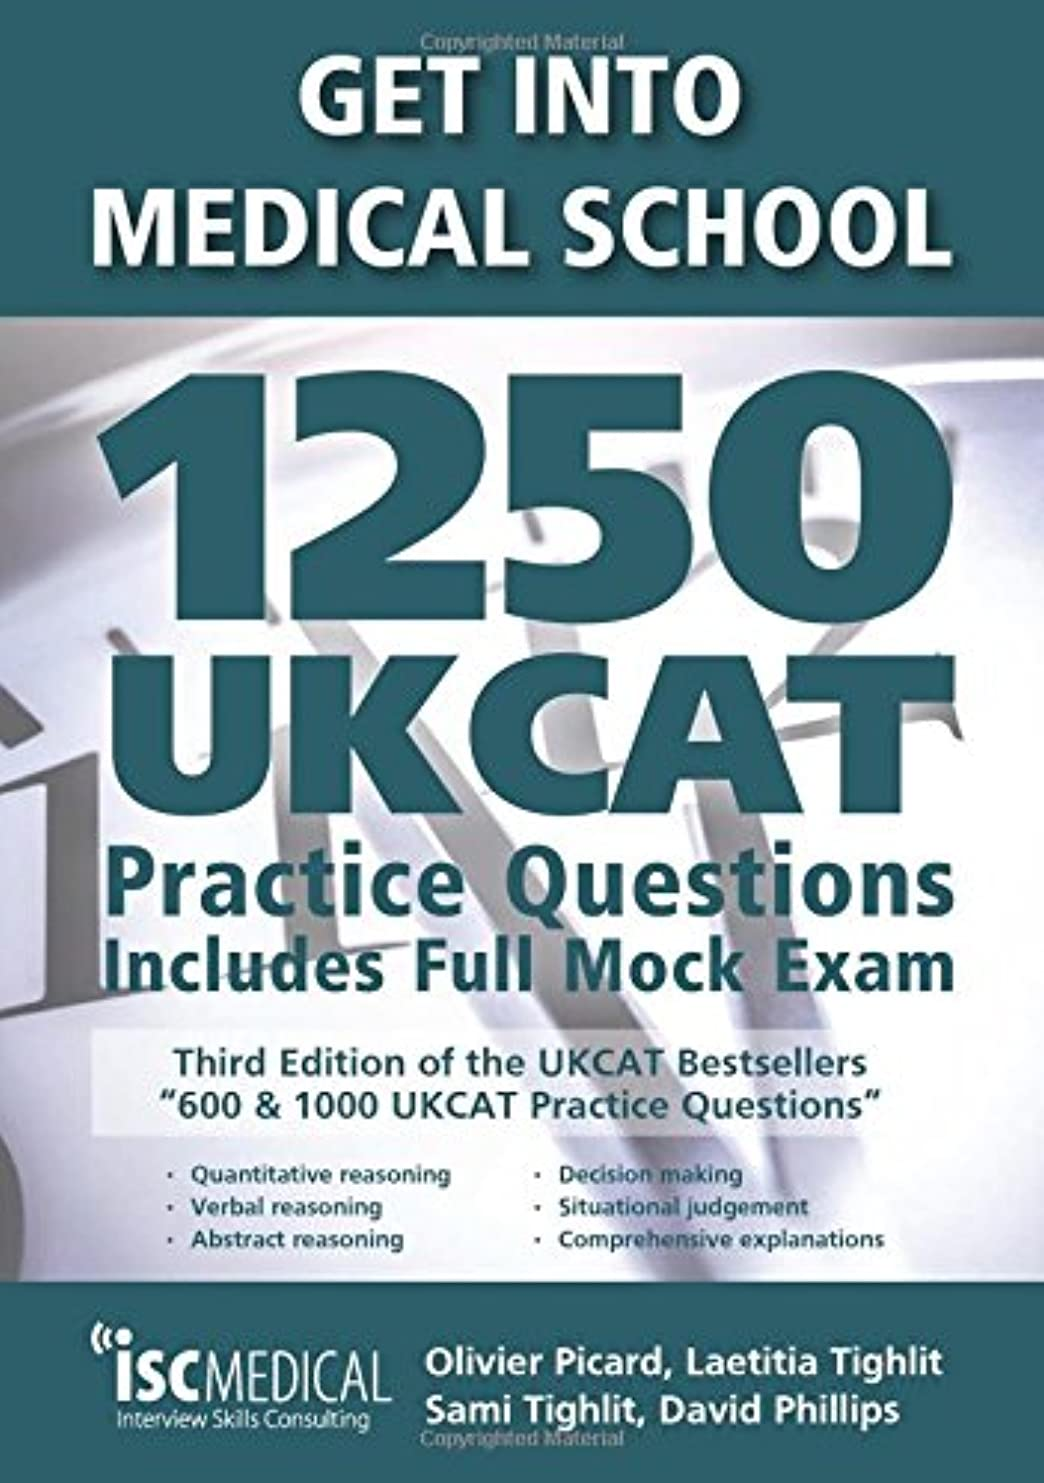 配分クレジットカスタムGet into Medical School - 1250 UKCAT Practice Questions. Includes Full Mock Exam